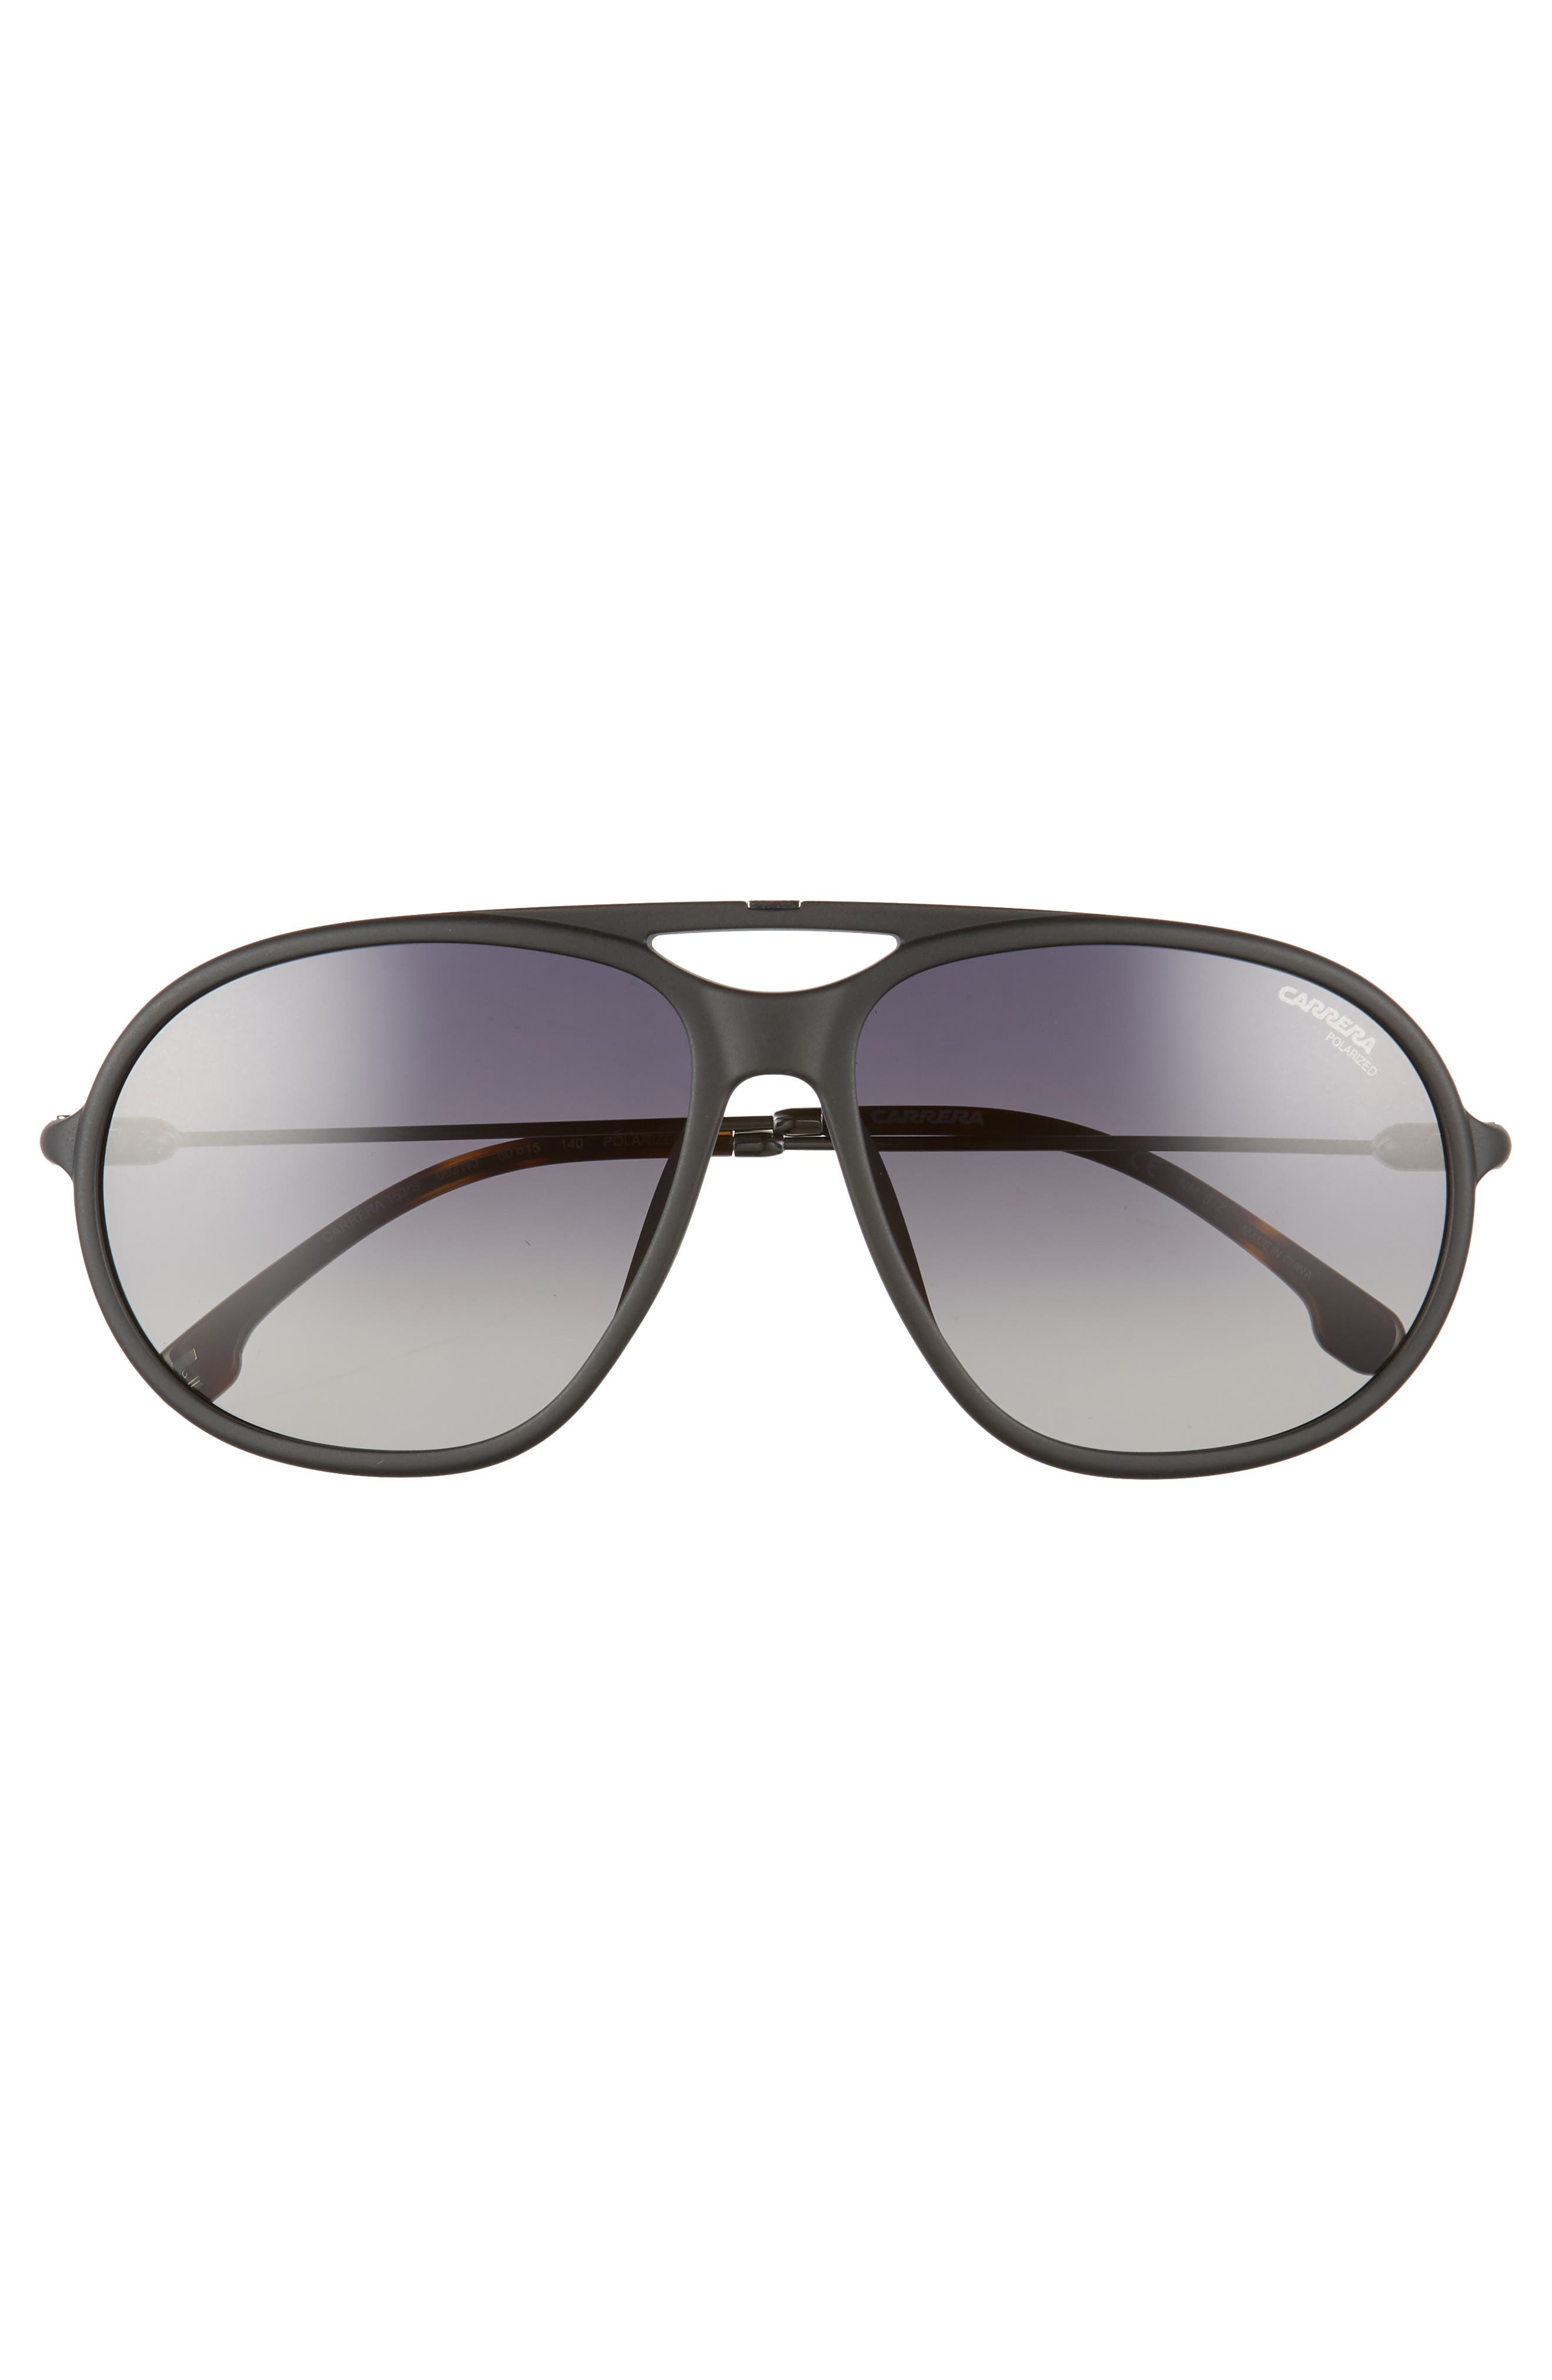 60mm Polarized Aviator Sunglasses,                             Alternate thumbnail 2, color,